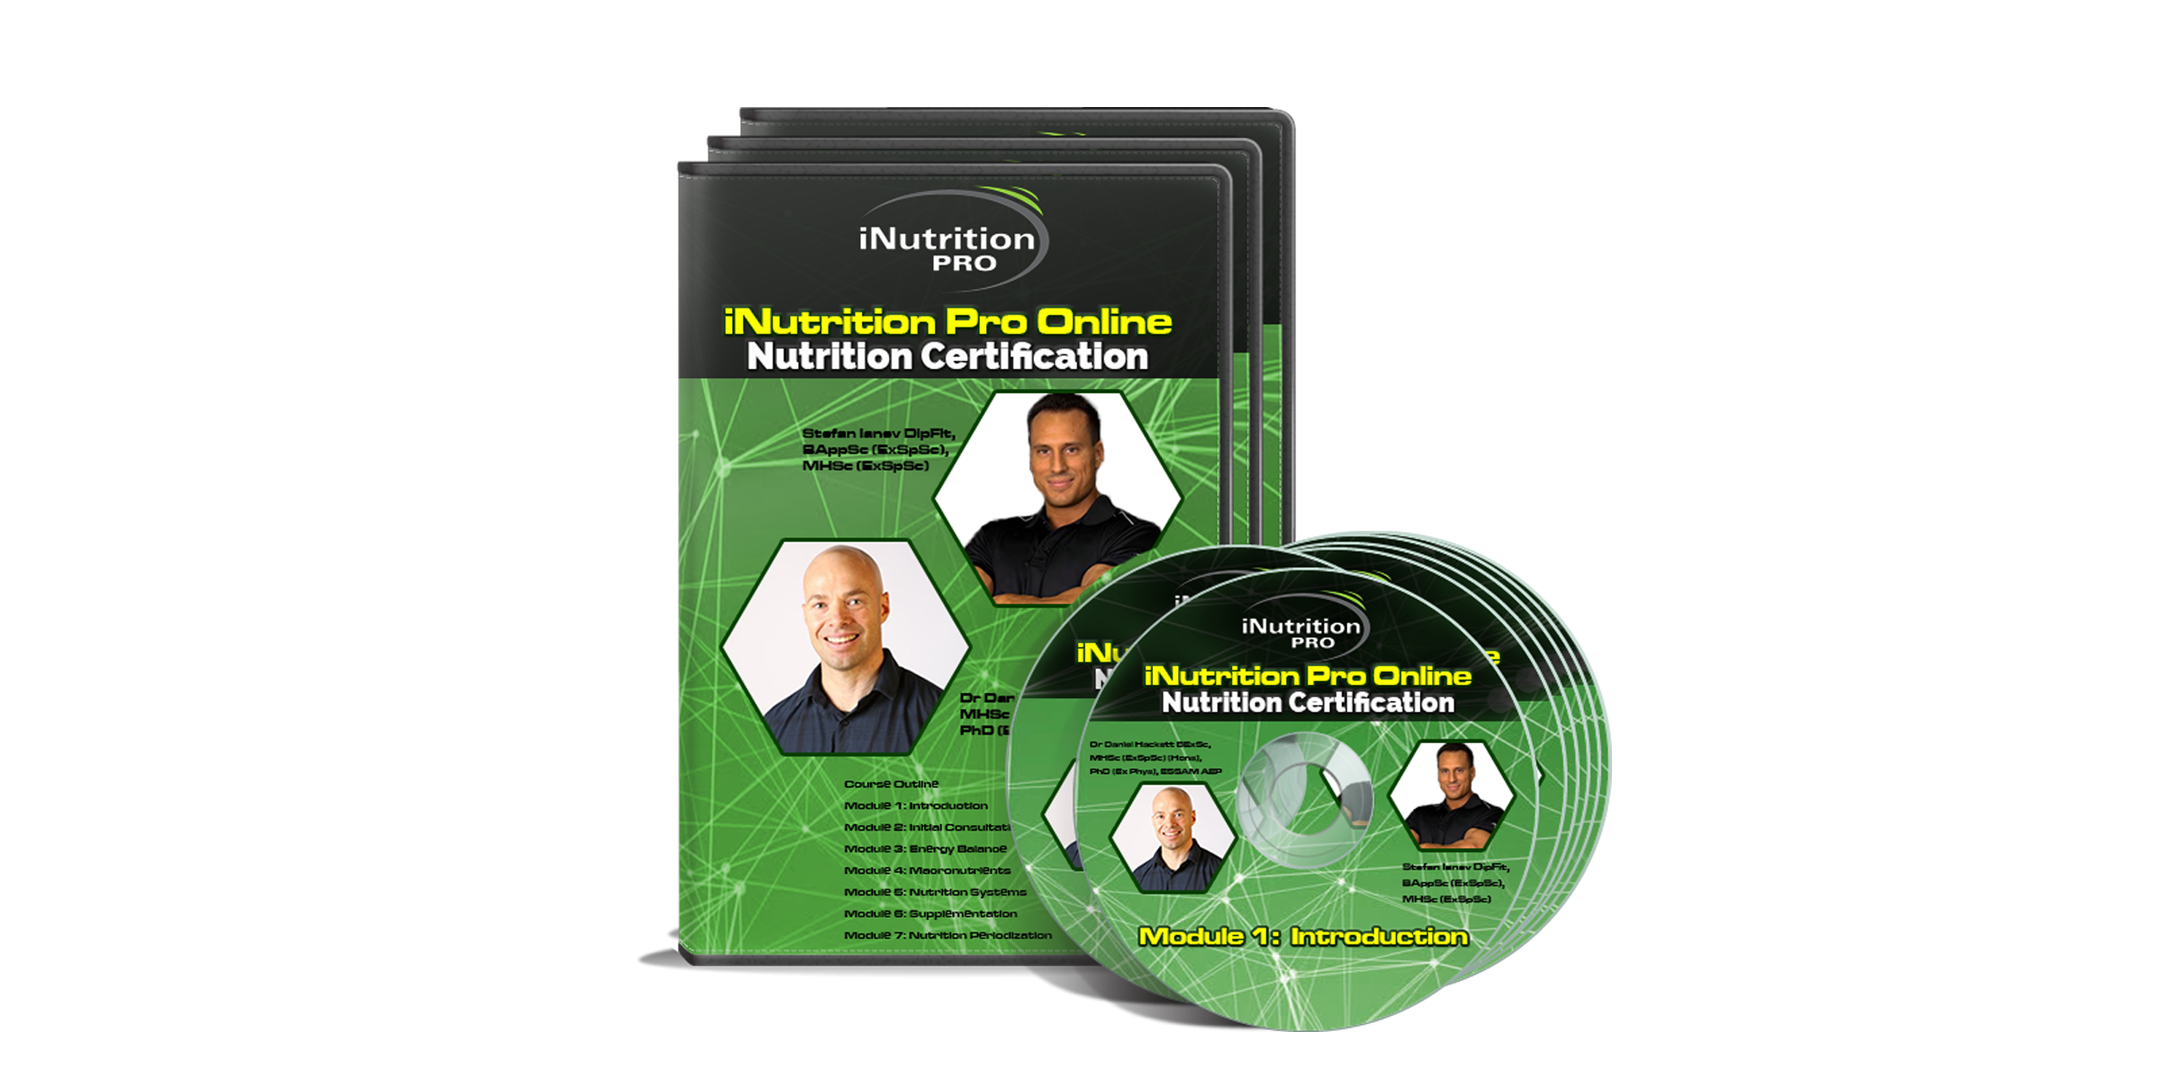 Inutrition Pro Online Nutrition Certification